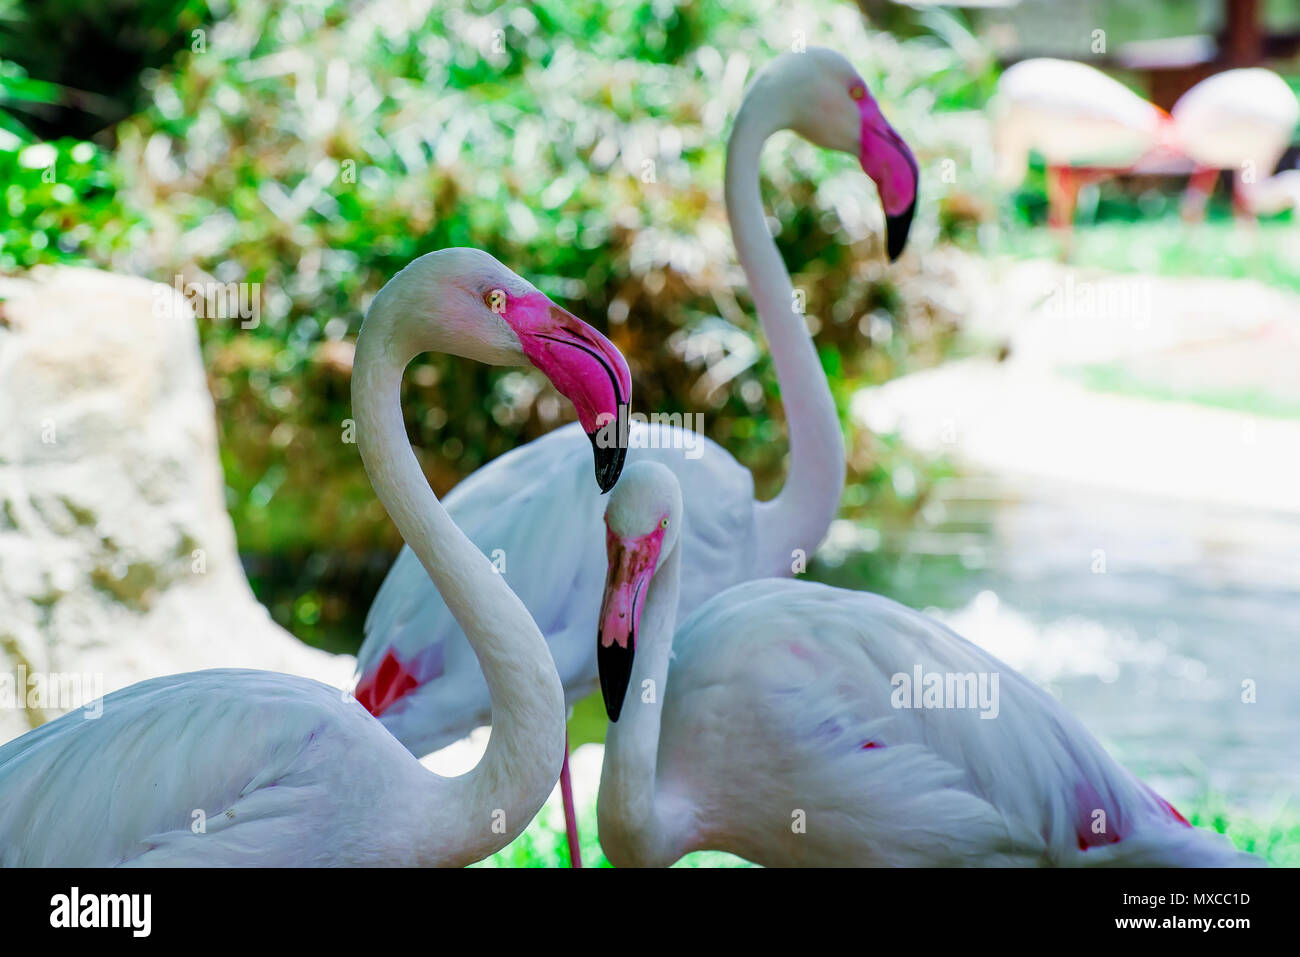 group of flamingos - Stock Image